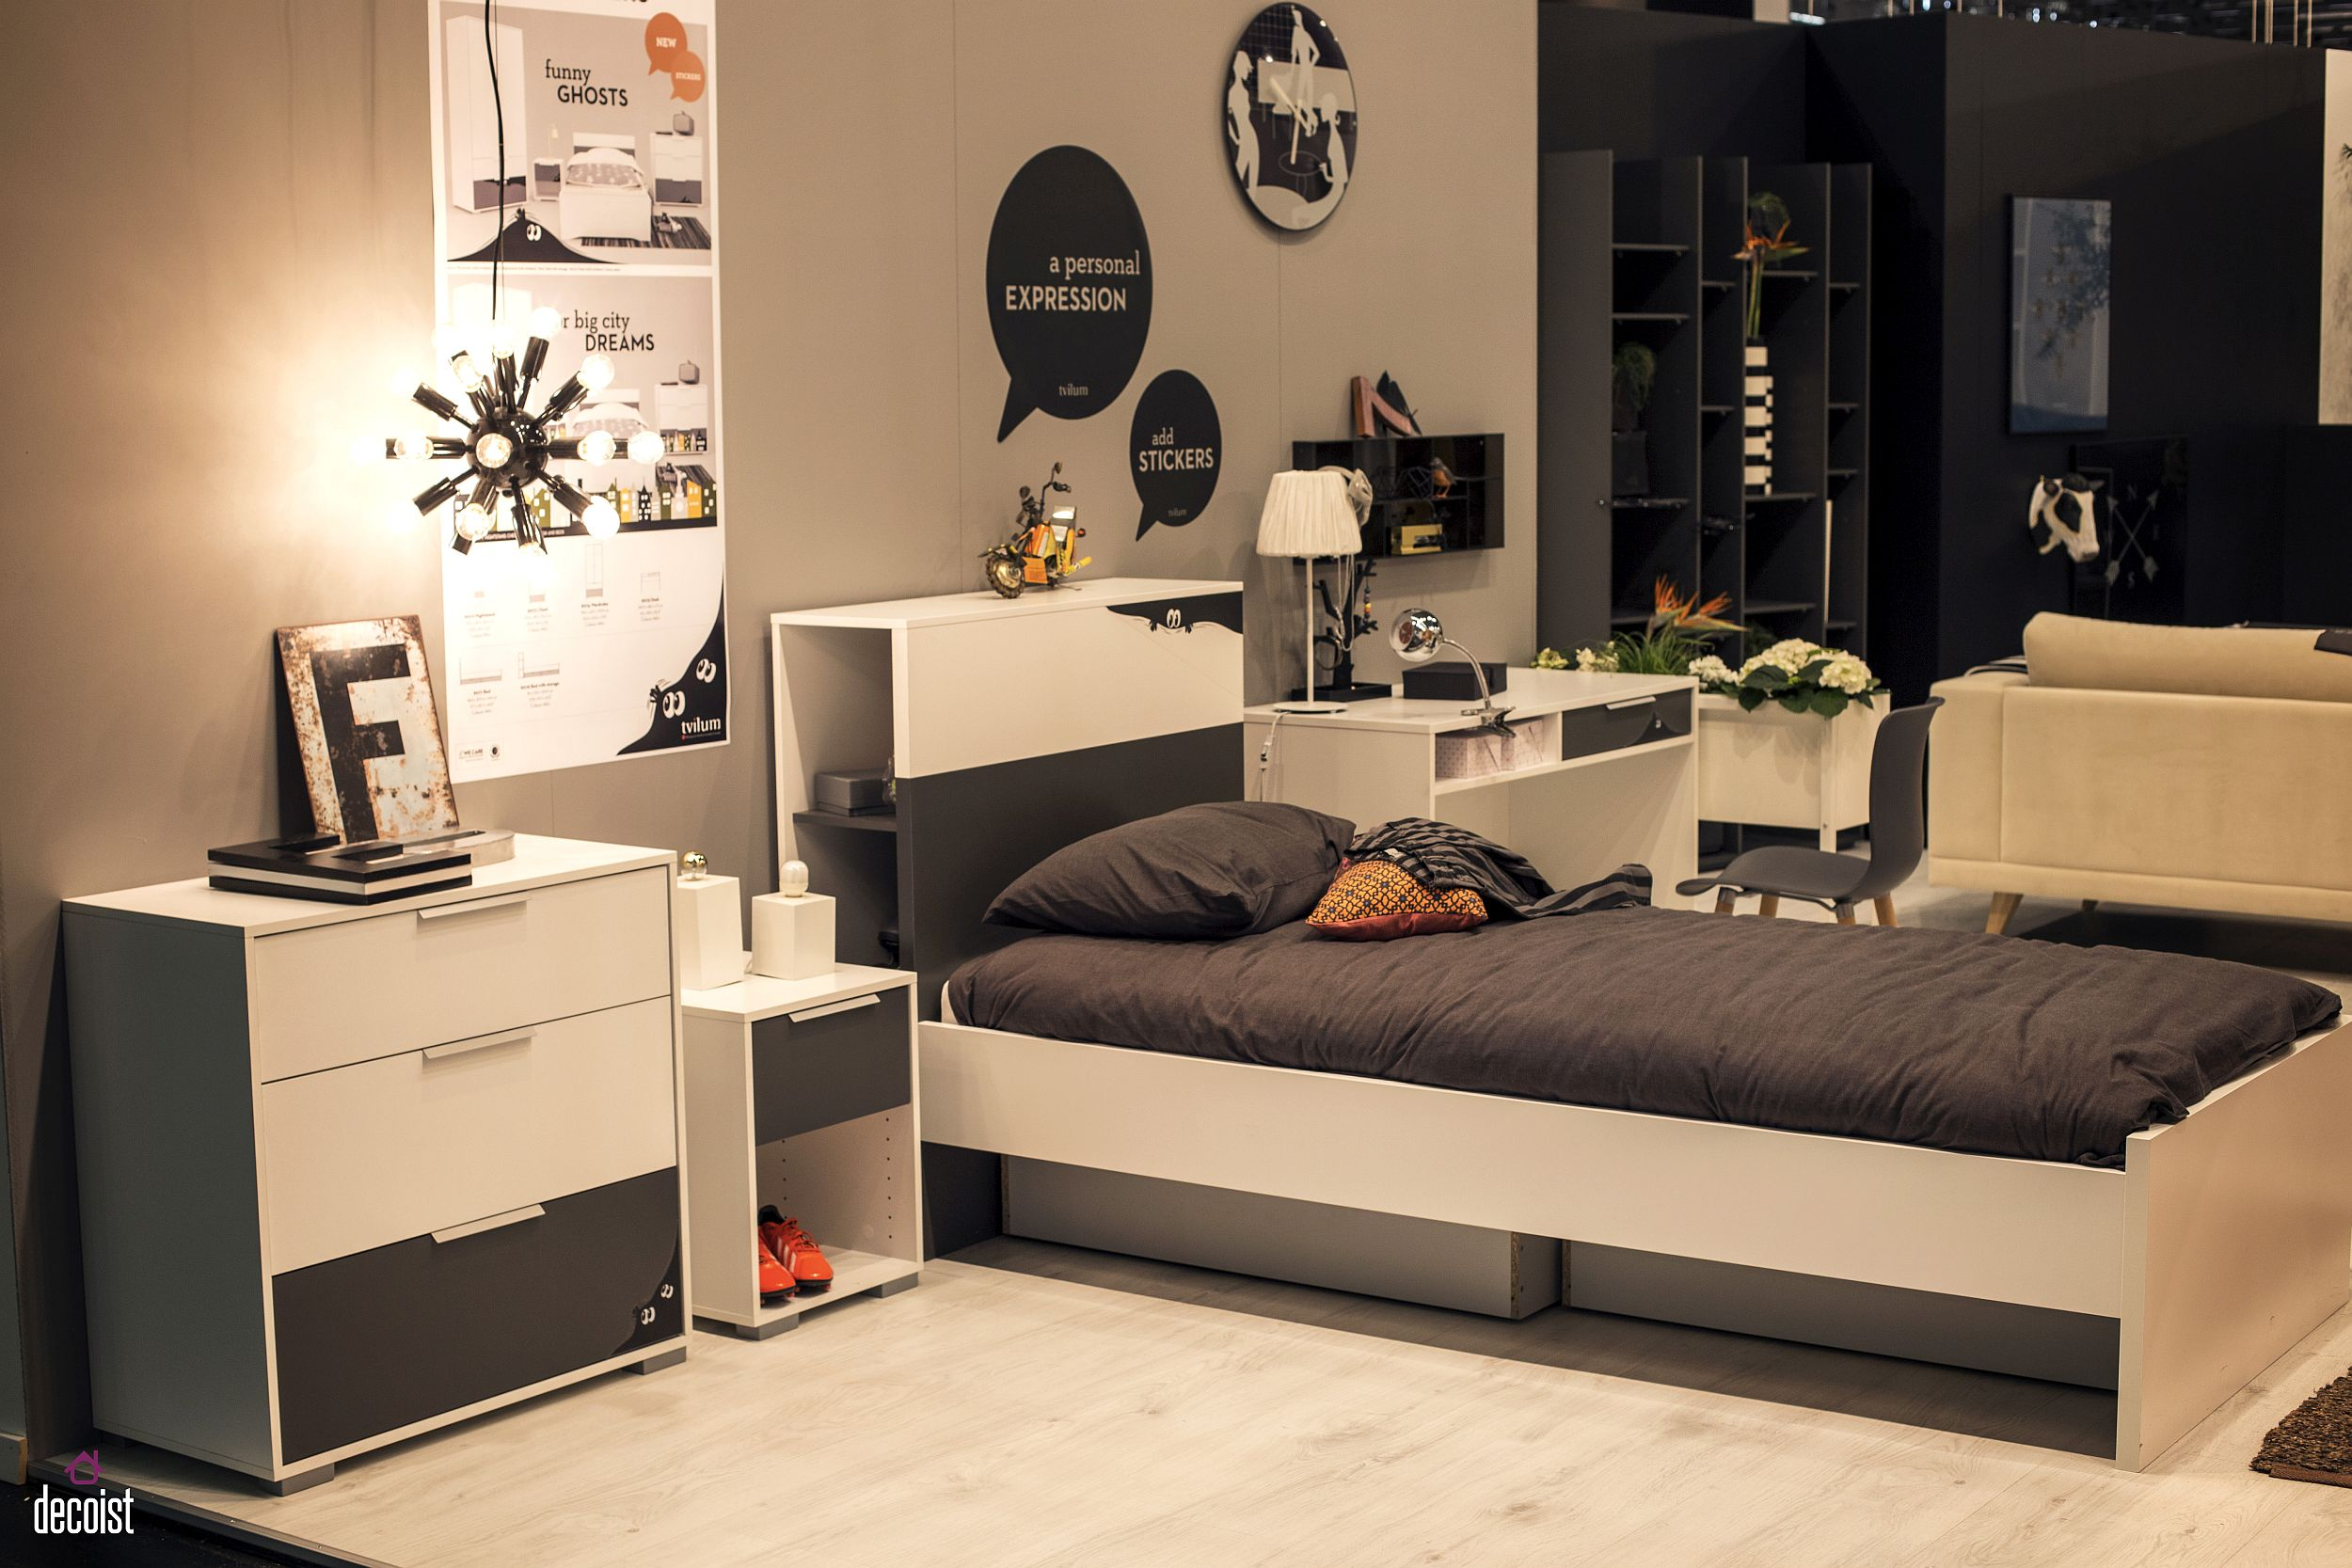 Space-savvy-and-stylish-kids-bedroom-with-matching-nighstands-additional-storage-space-and-a-homework-zone